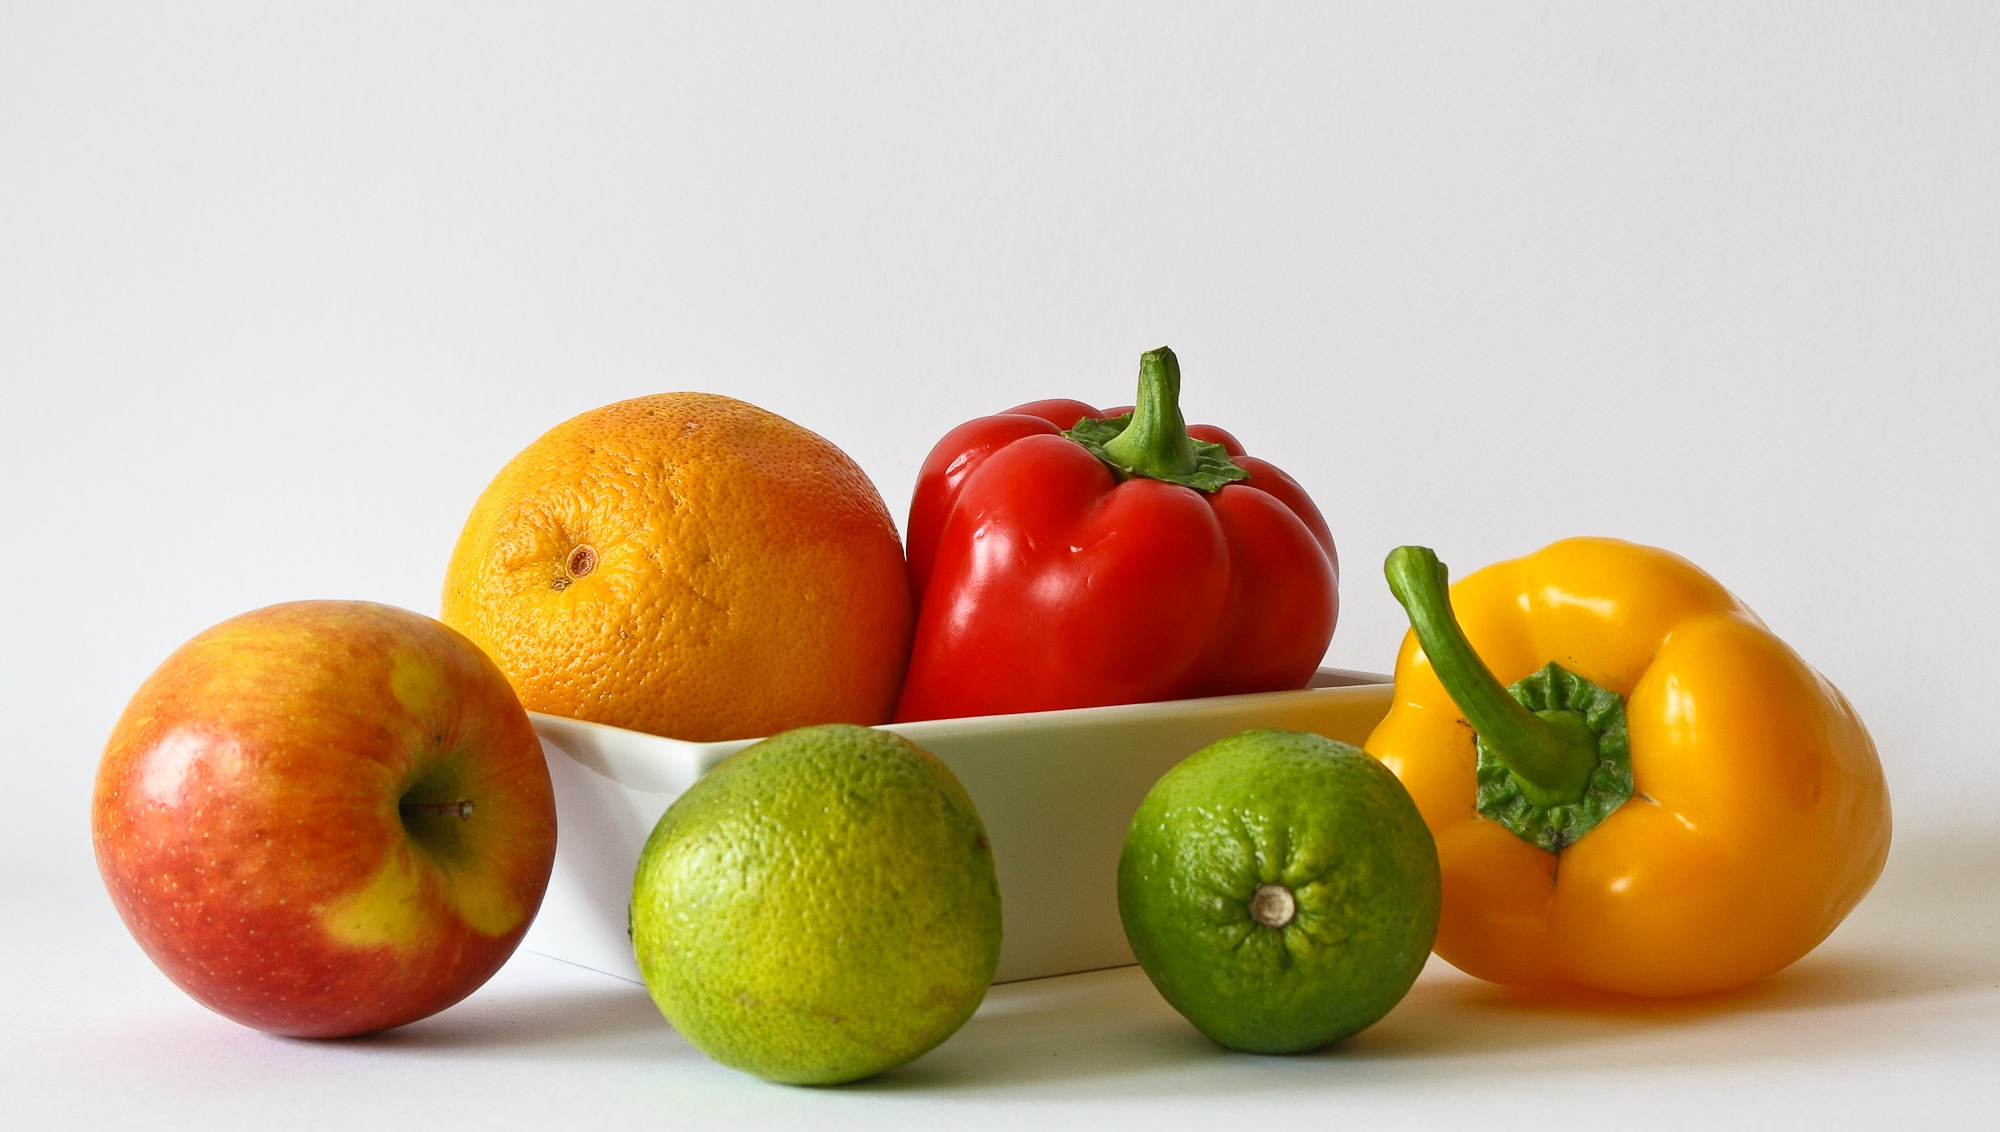 alkaline diets and kidney disease american society for nutrition